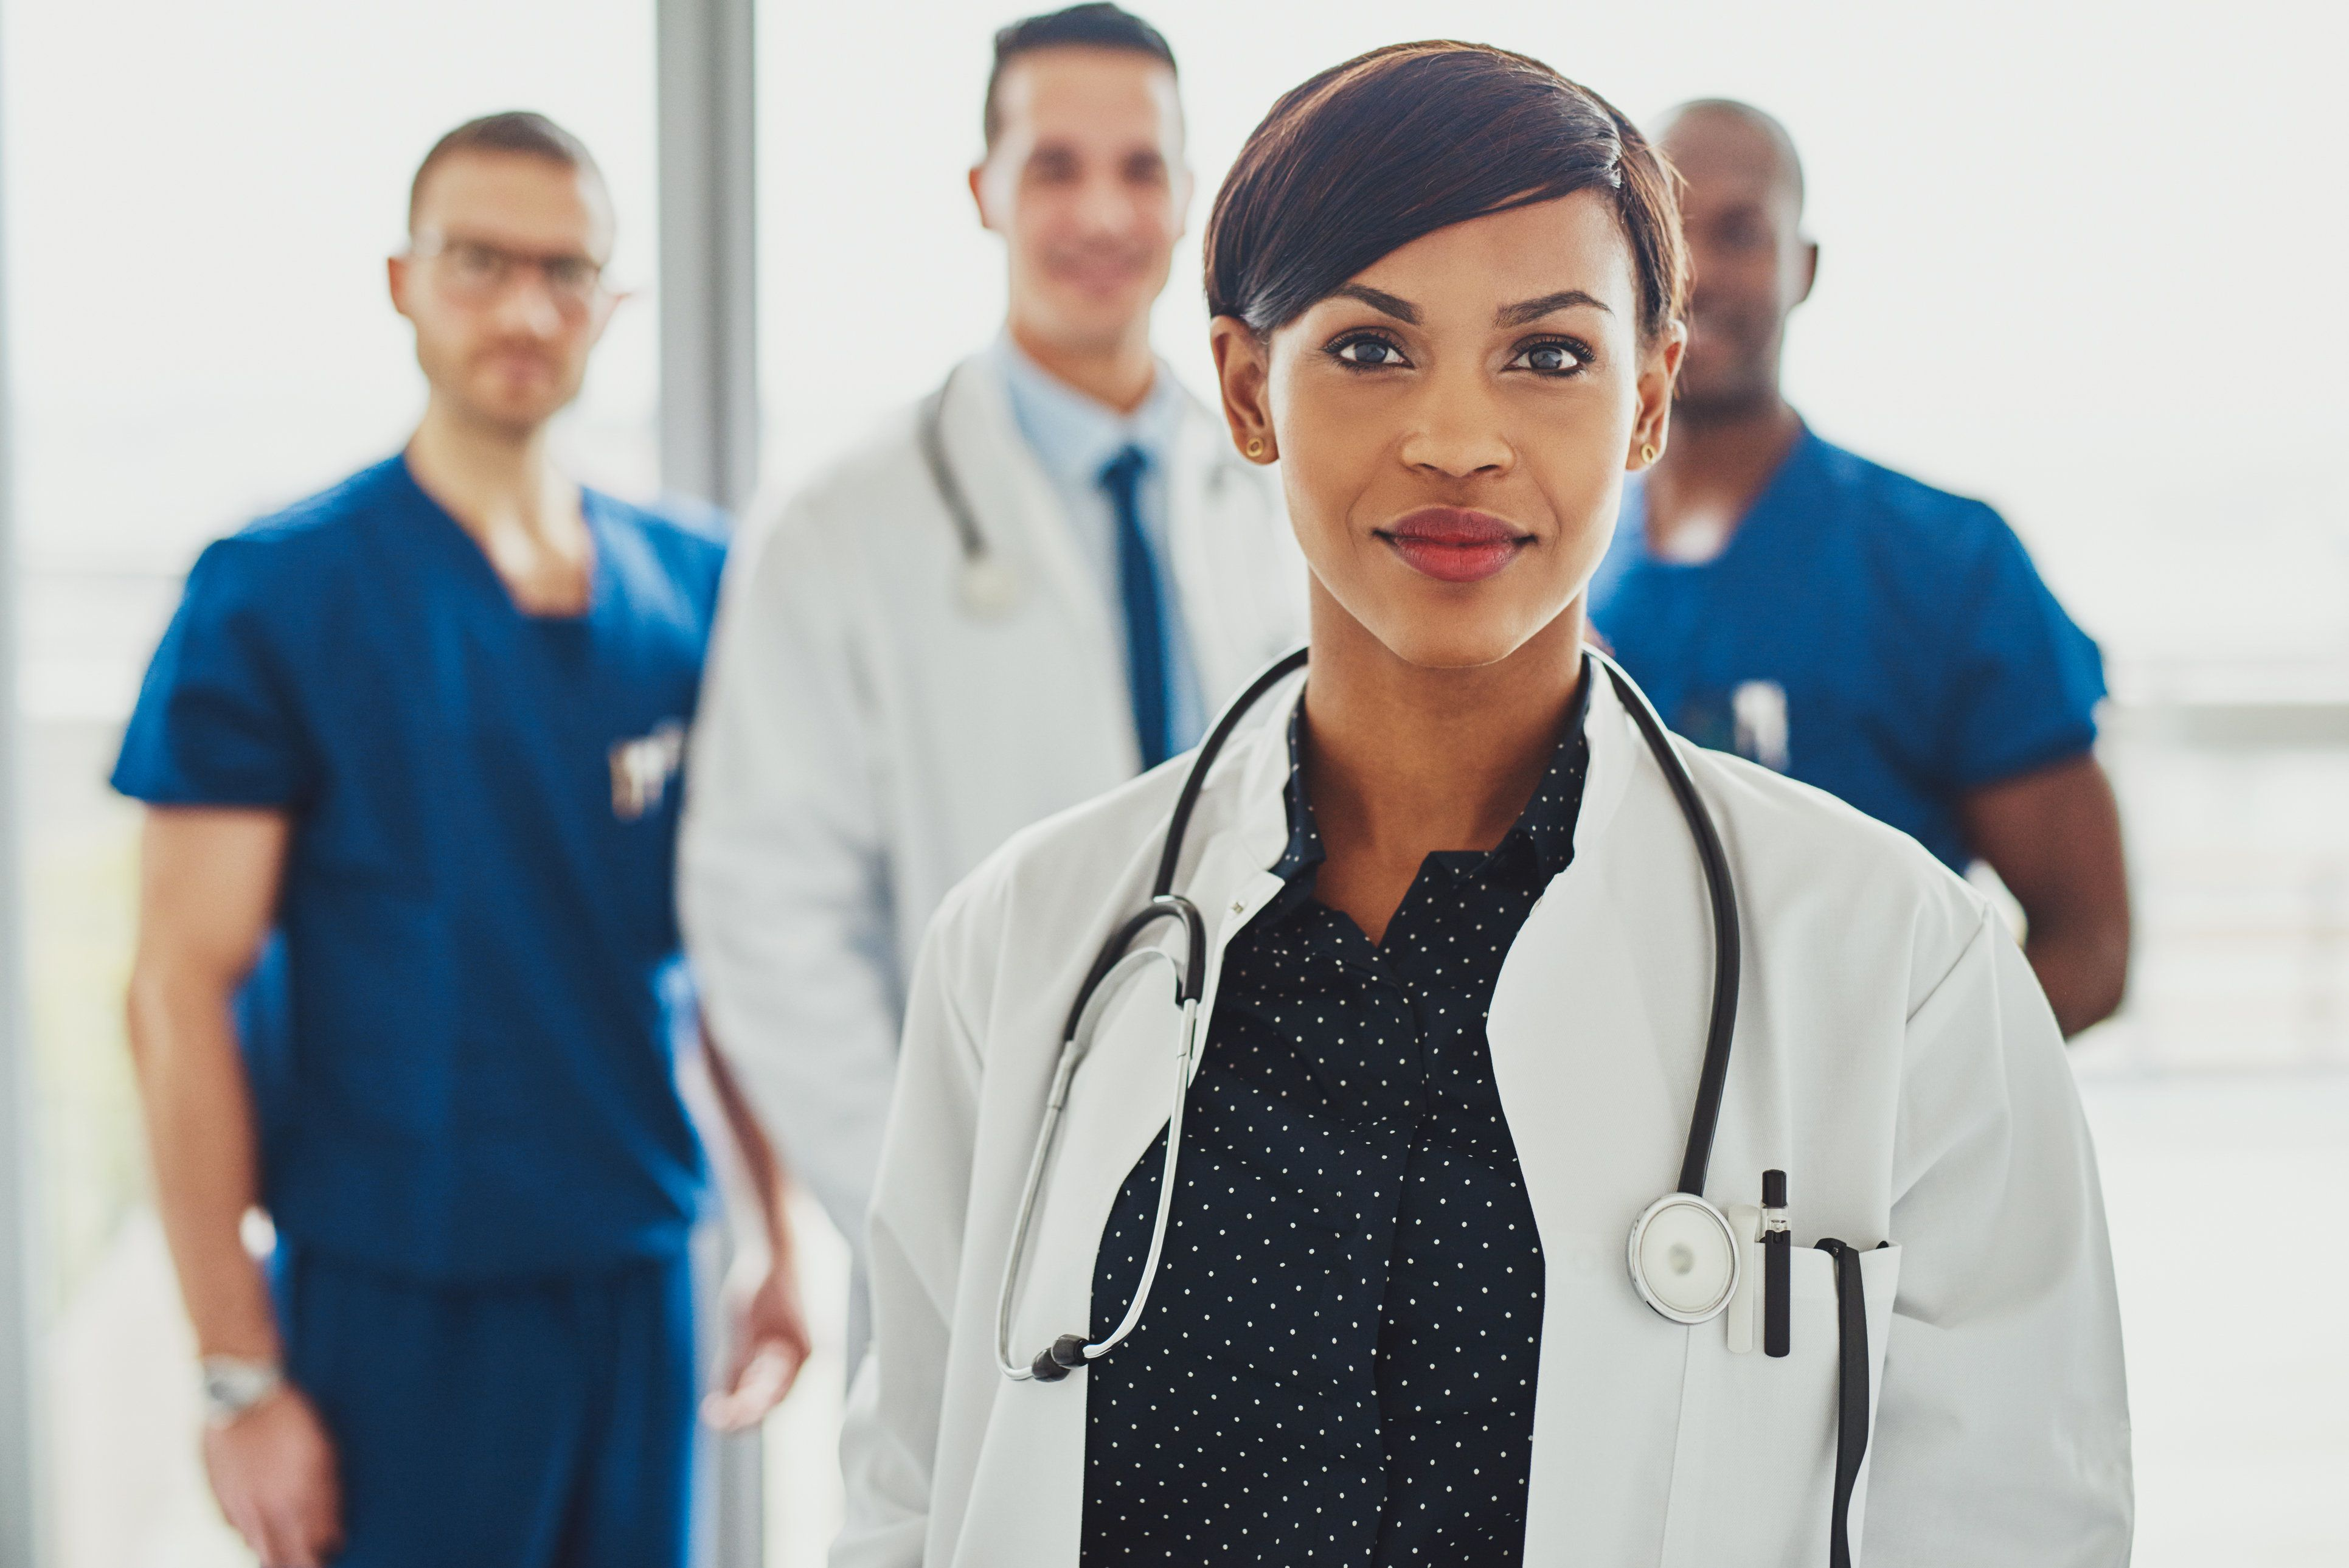 Female doctors outperformed their male counterparts on measures of 30-day readmission and 30-day mortality...